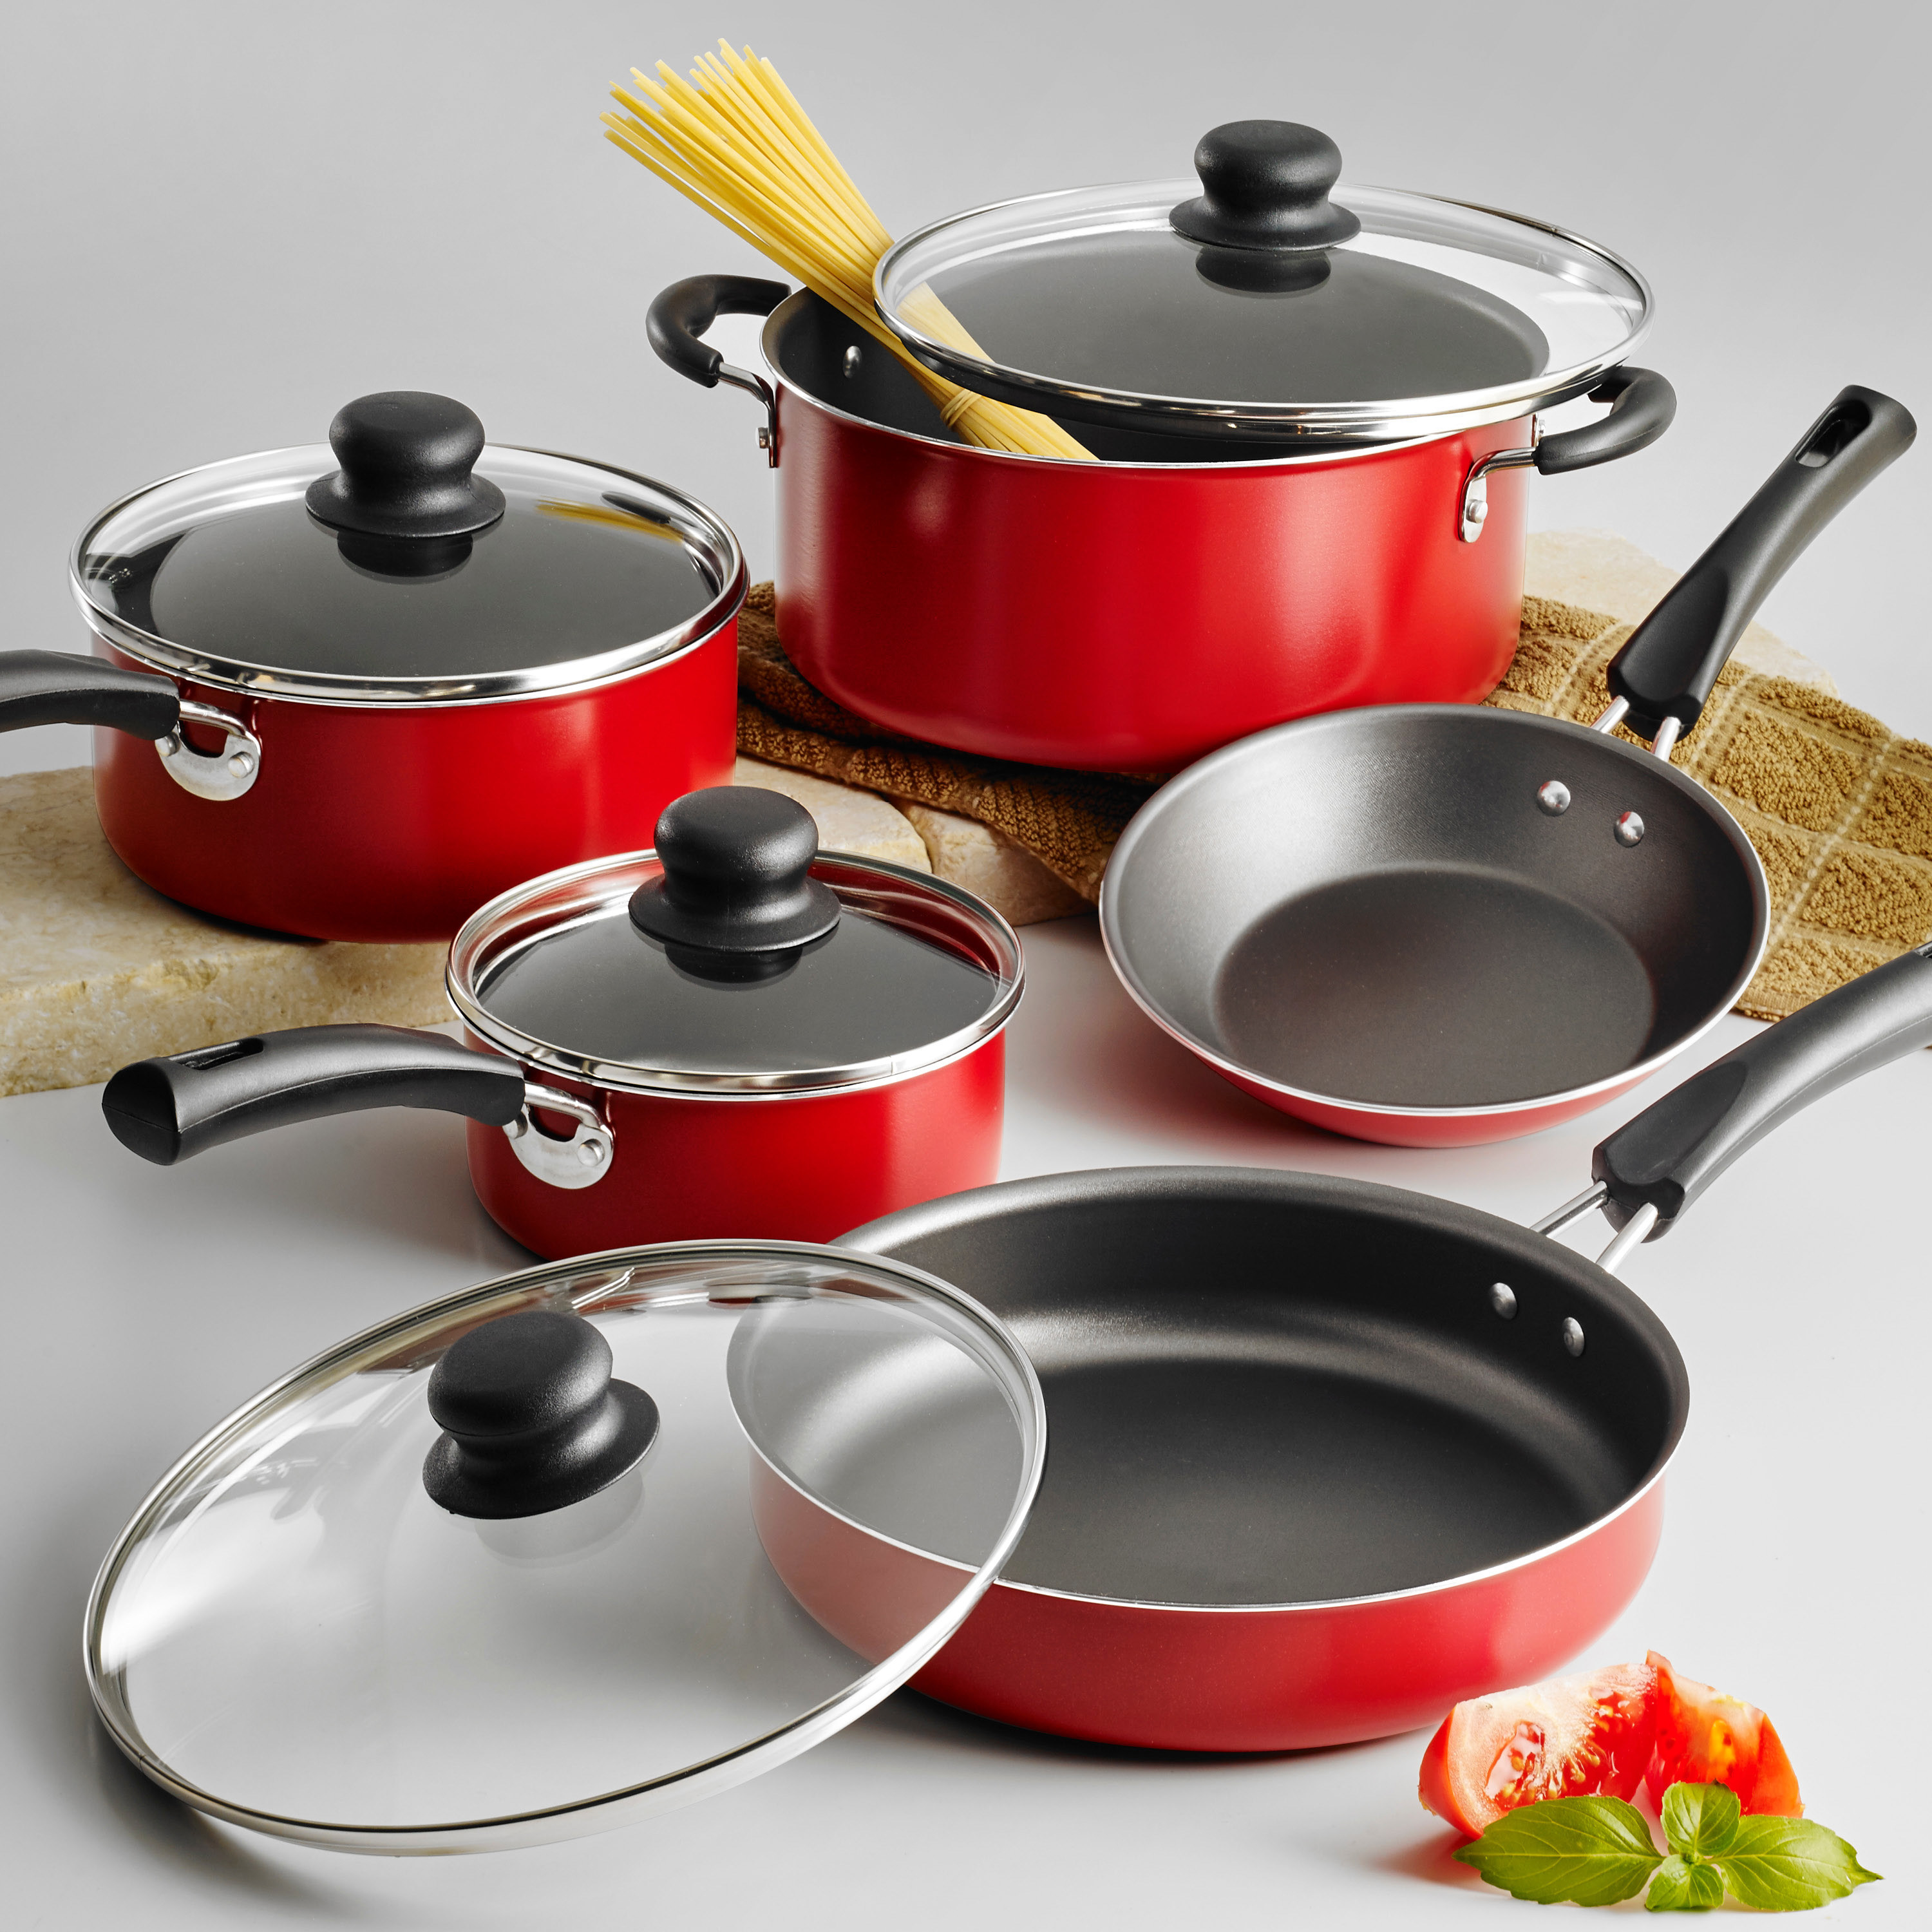 The cookware set in the color red